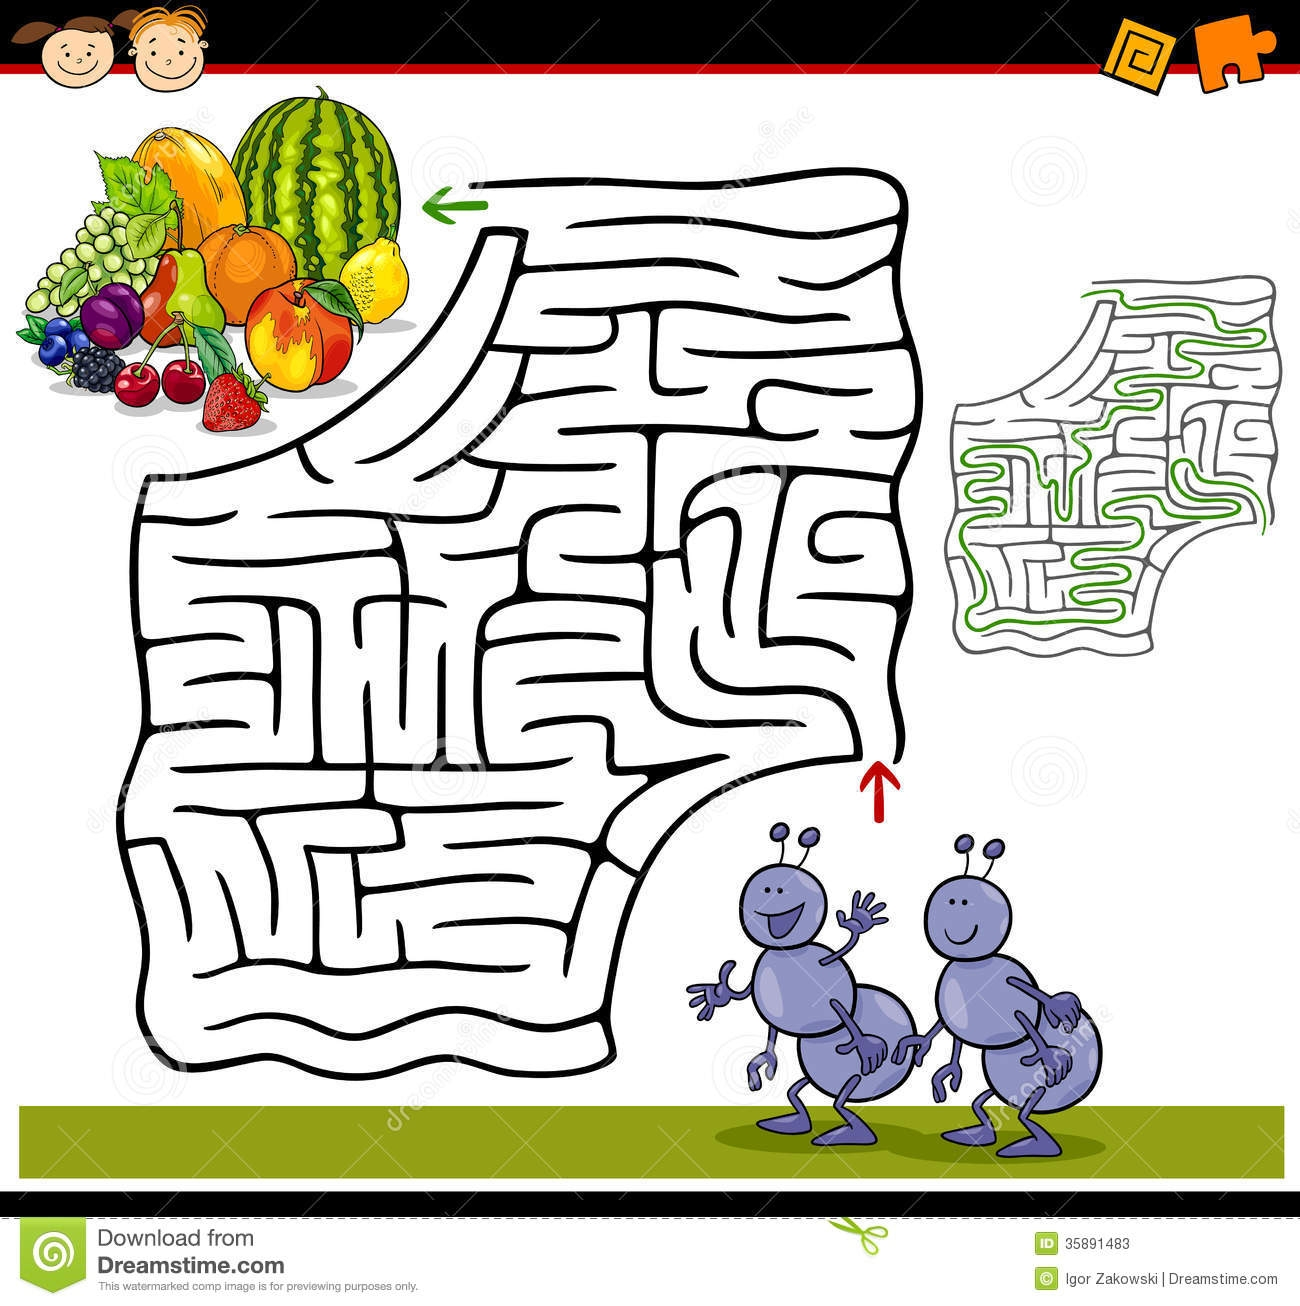 insect coloring pages - stock photos cartoon maze labyrinth game illustration education preschool children funny ants fruits image